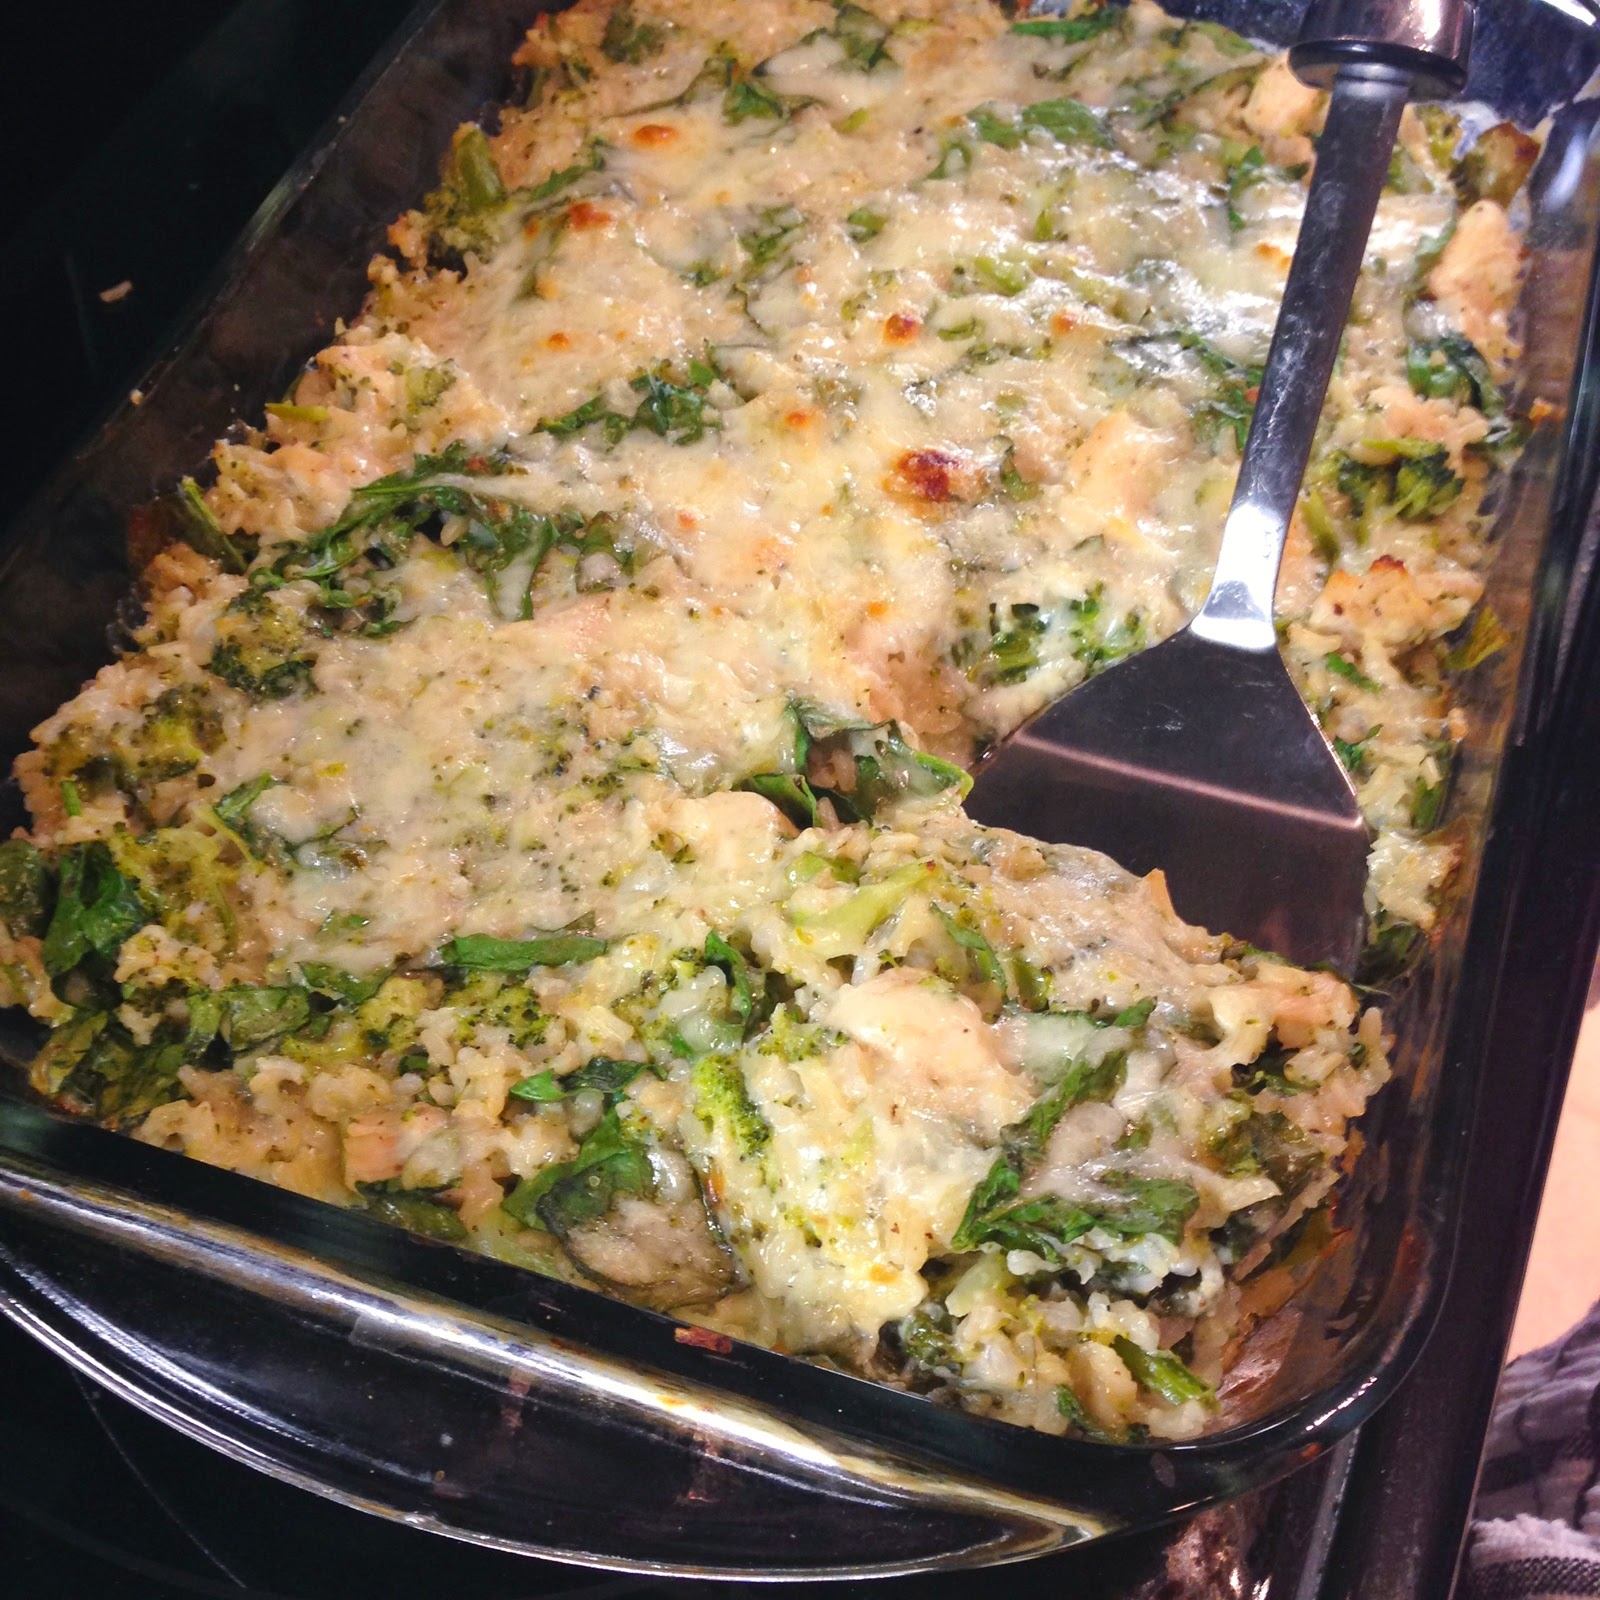 Broccoli, chicken, spinach, and rice casserole